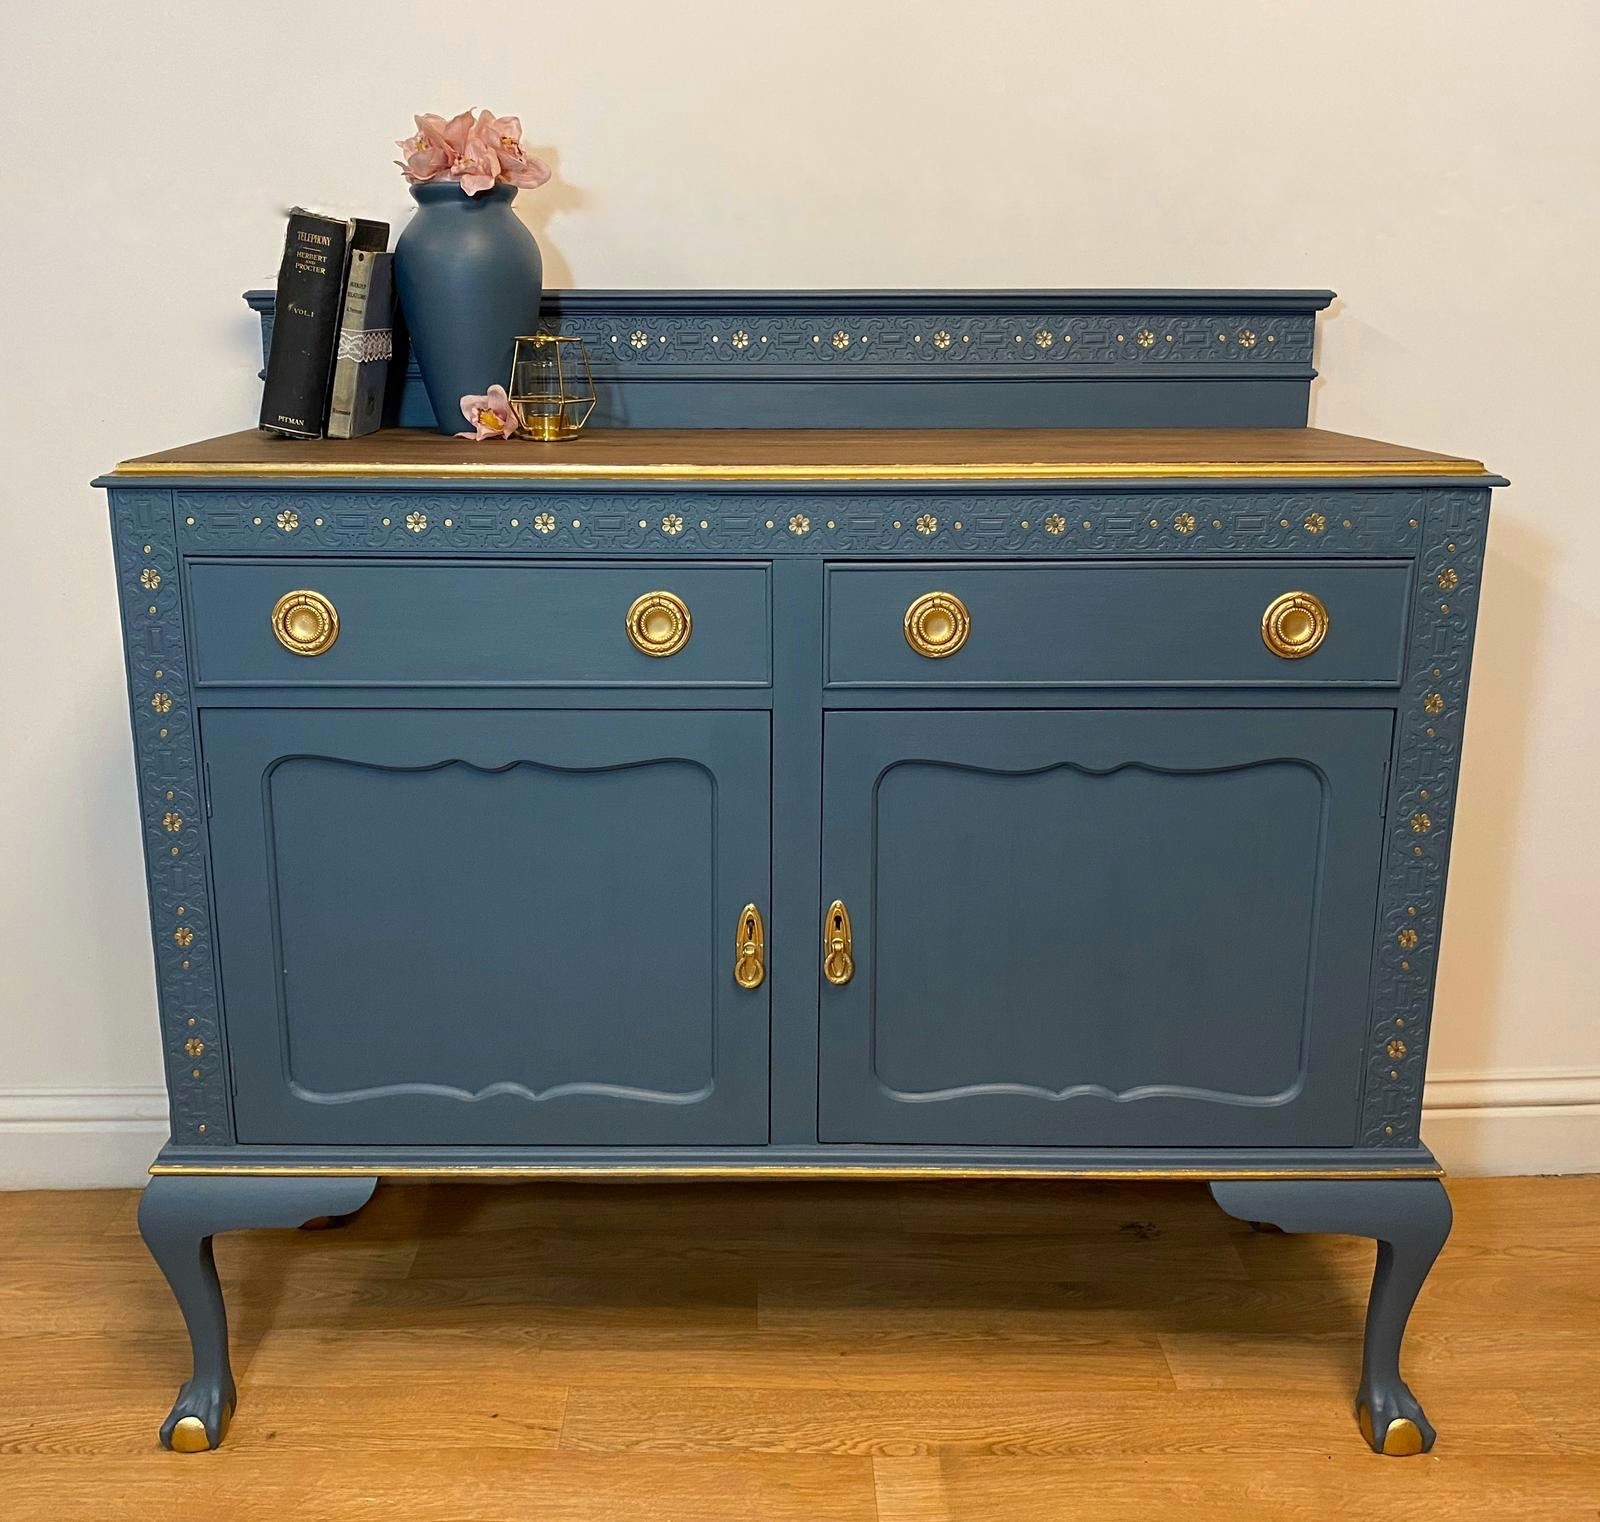 Picture of: Vintage Blue Hand Painted Sideboard Buffet Storage Dresser Drinks Cabinet Cupboard Dining Room Blue Gold Vinterior